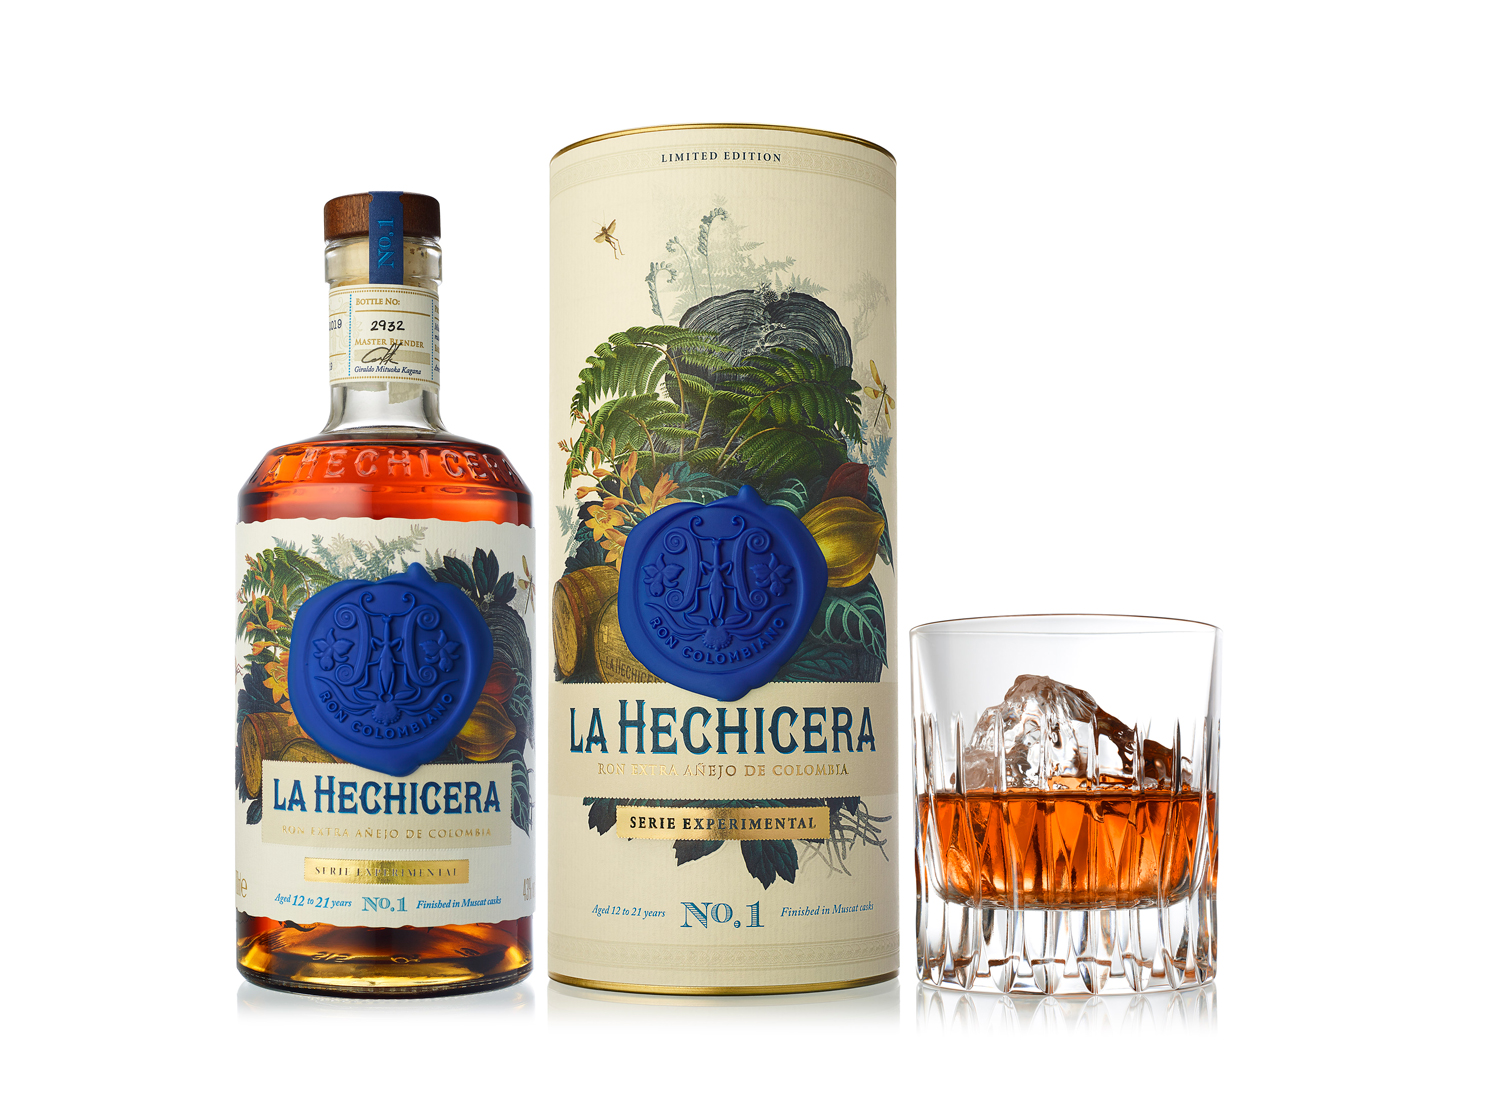 Approach_Retouch_London_LaHechicera_Rum_Cutout_All-1